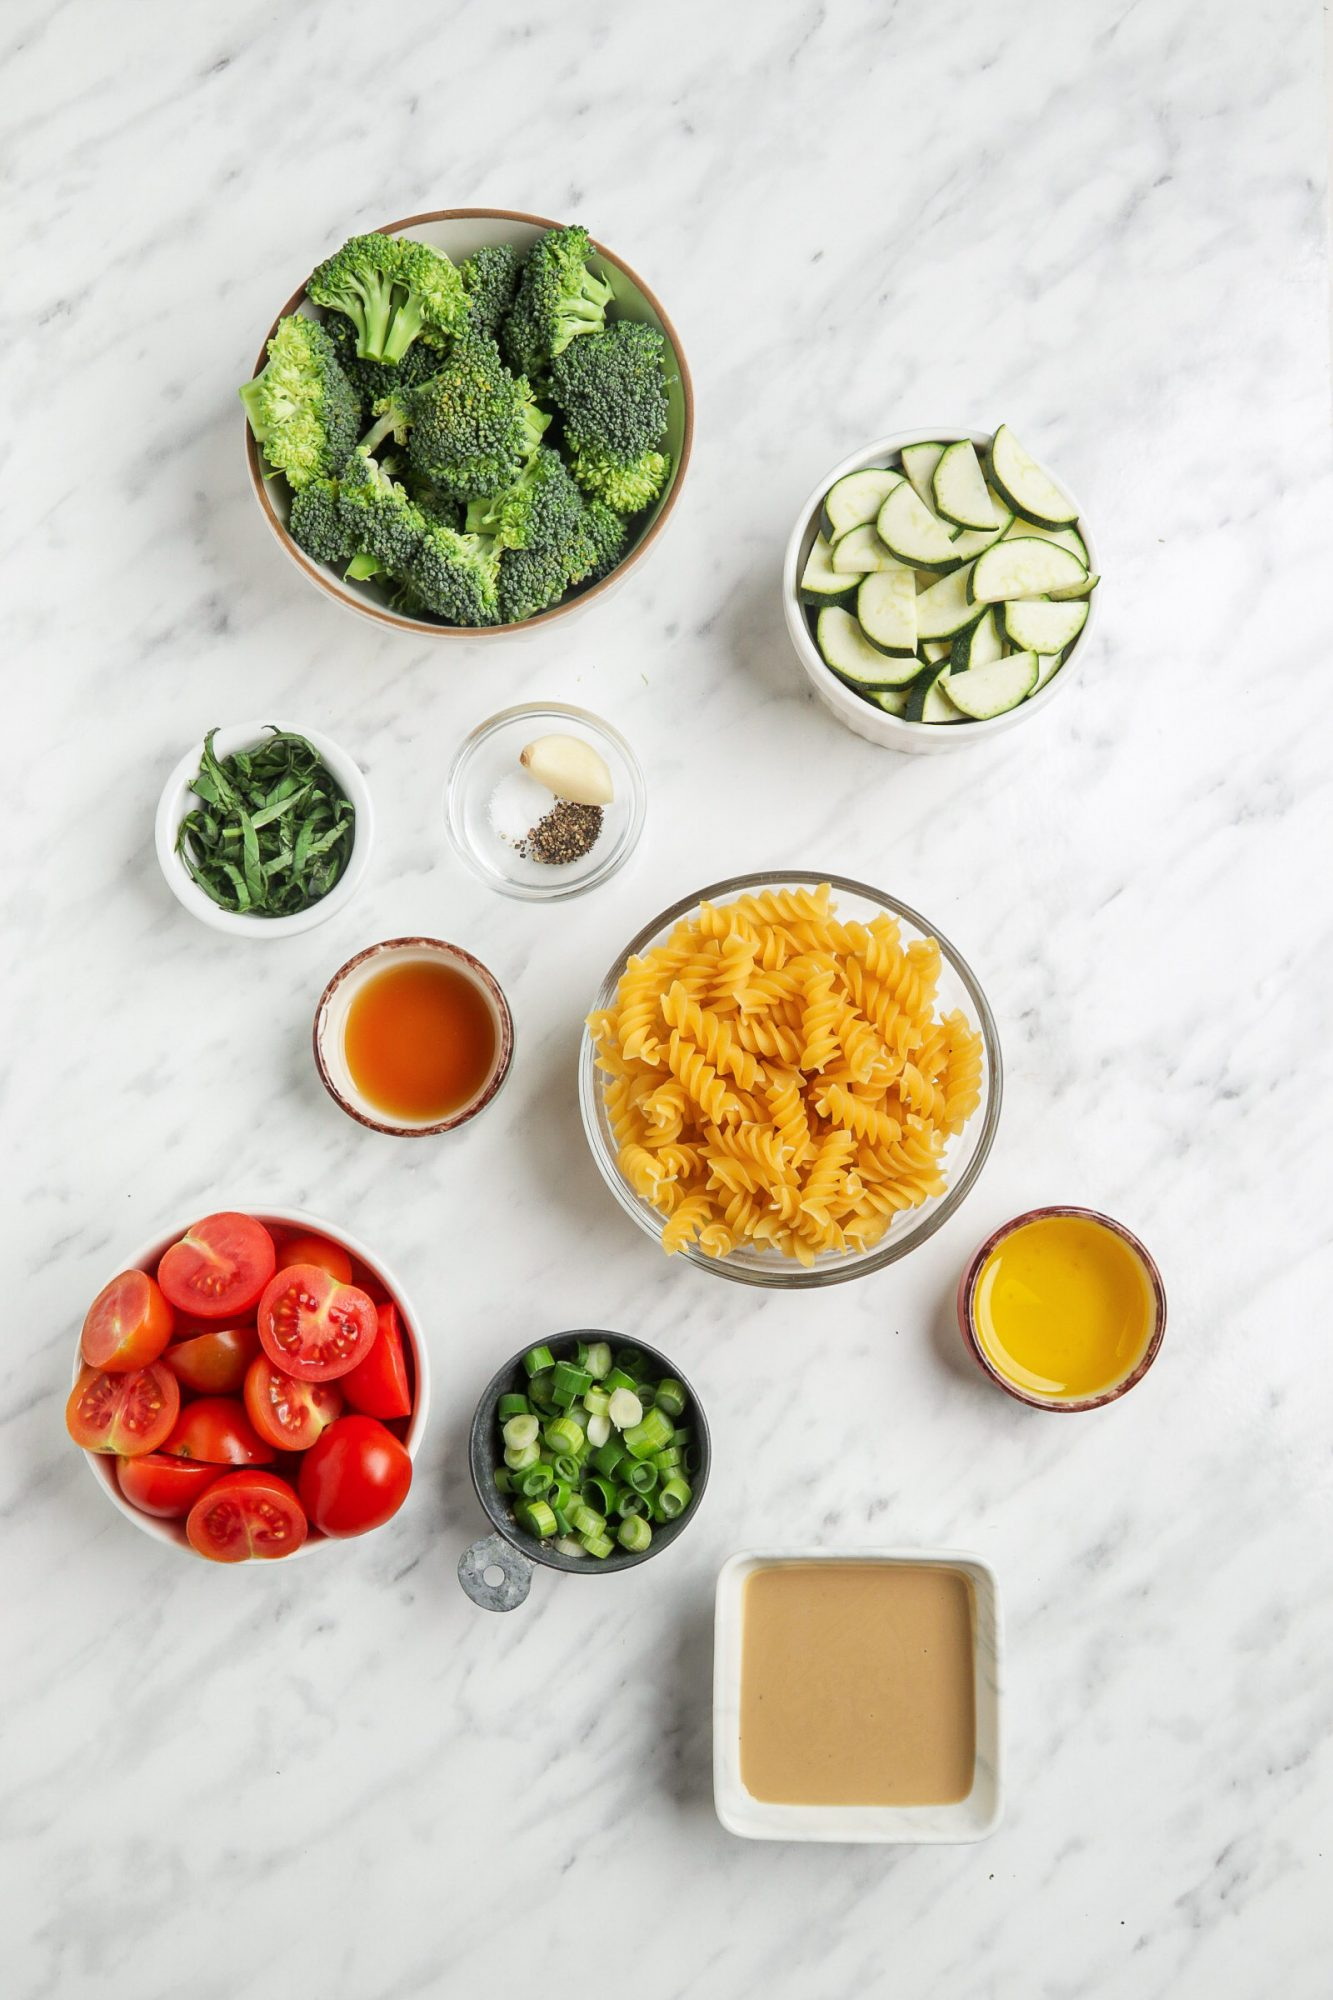 Broccoli Pasta Salad Ingredients